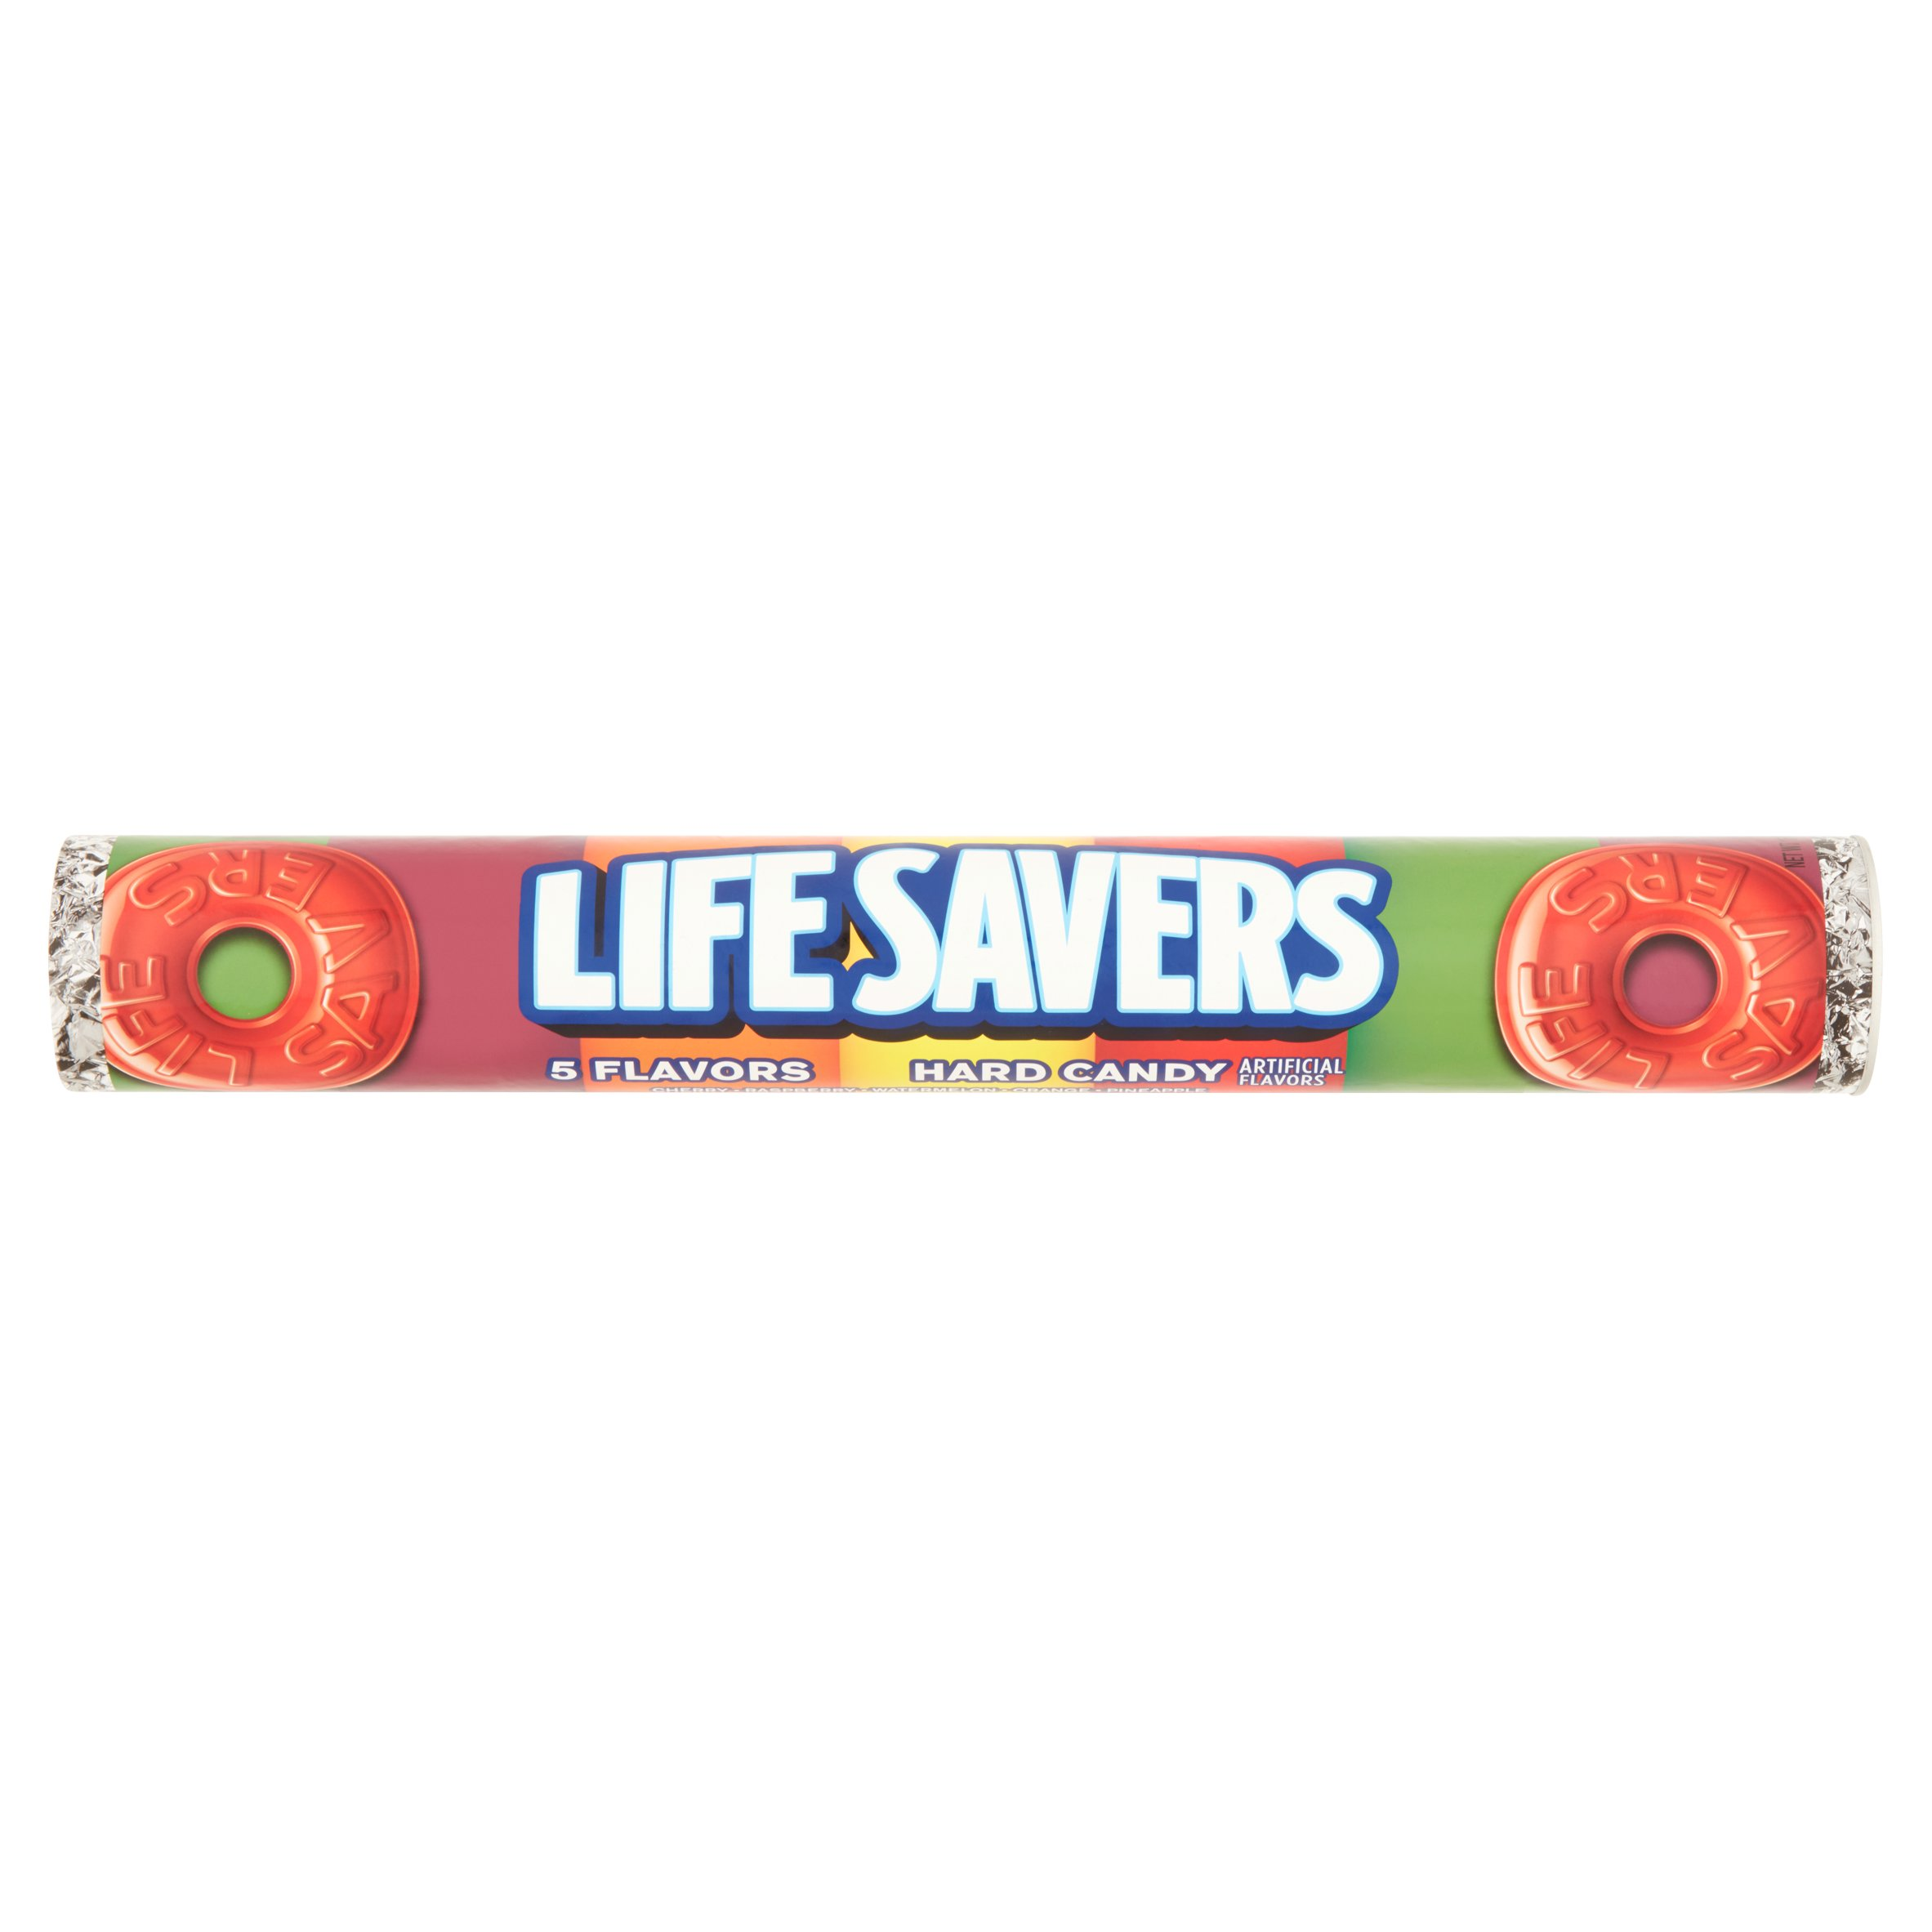 Life Savers 5 Flavors Hard Candy 15 oz by The WM. Wrigley Jr. Company